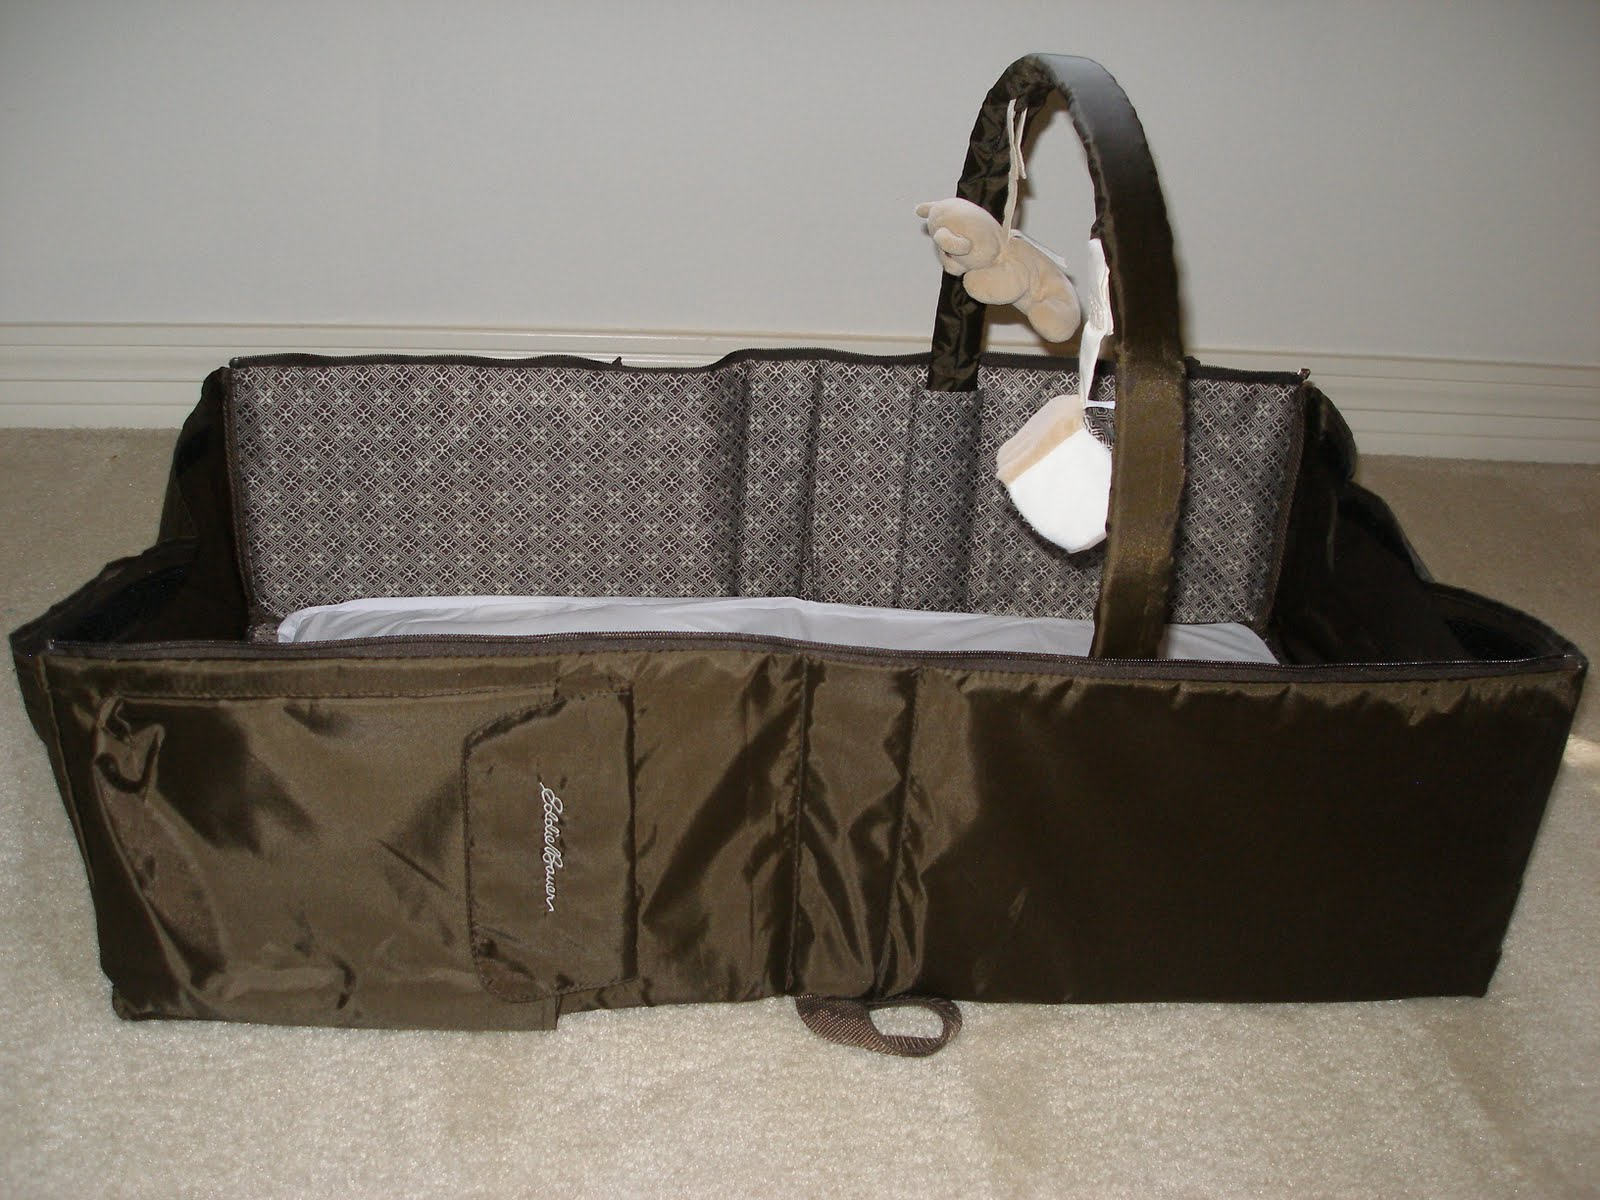 Baby Small Bed The Bed Itself is Small With